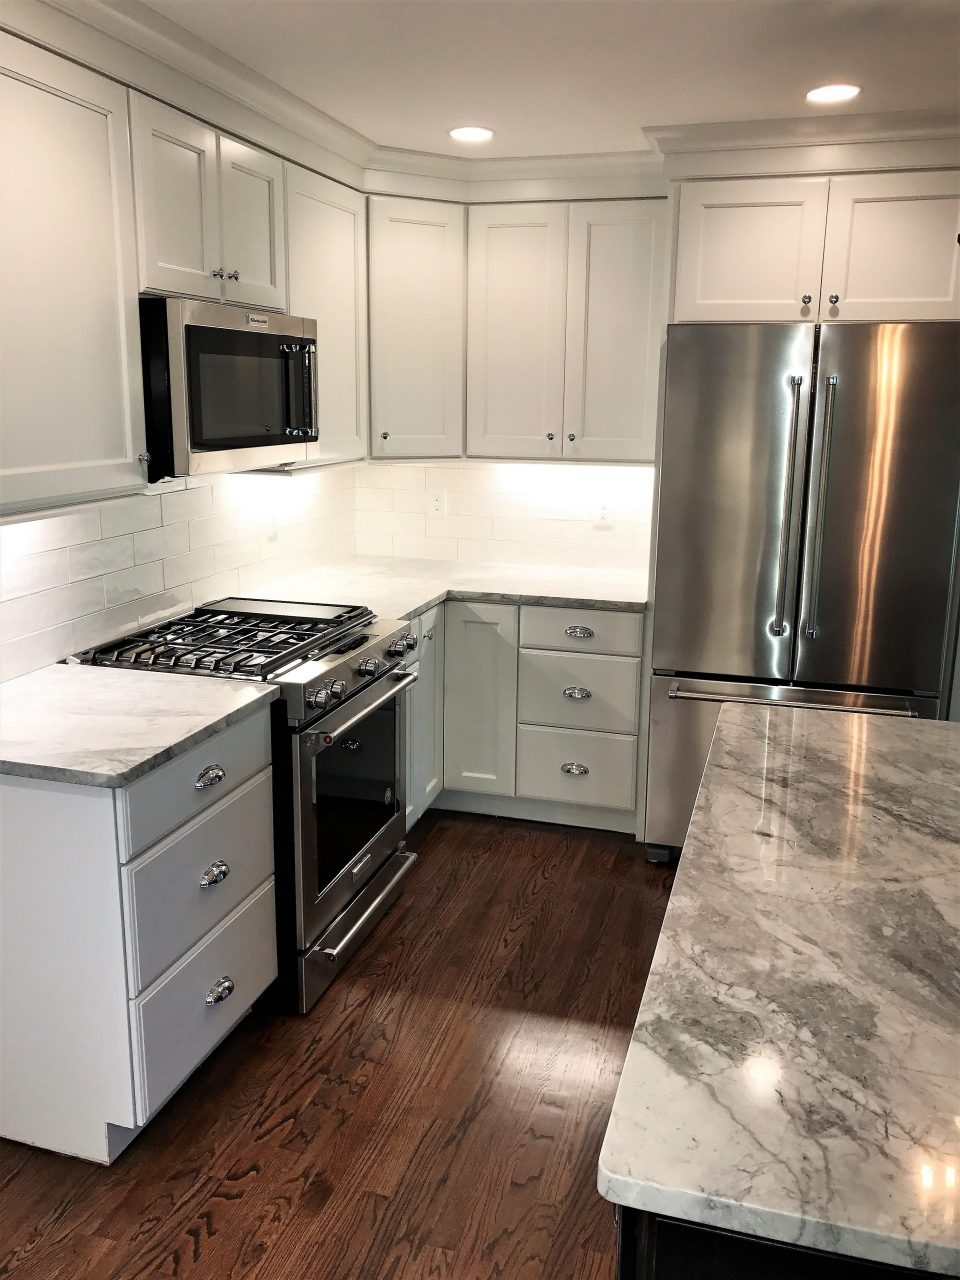 Kitchen Renovation In Grays And White Counter Tops Are Super White